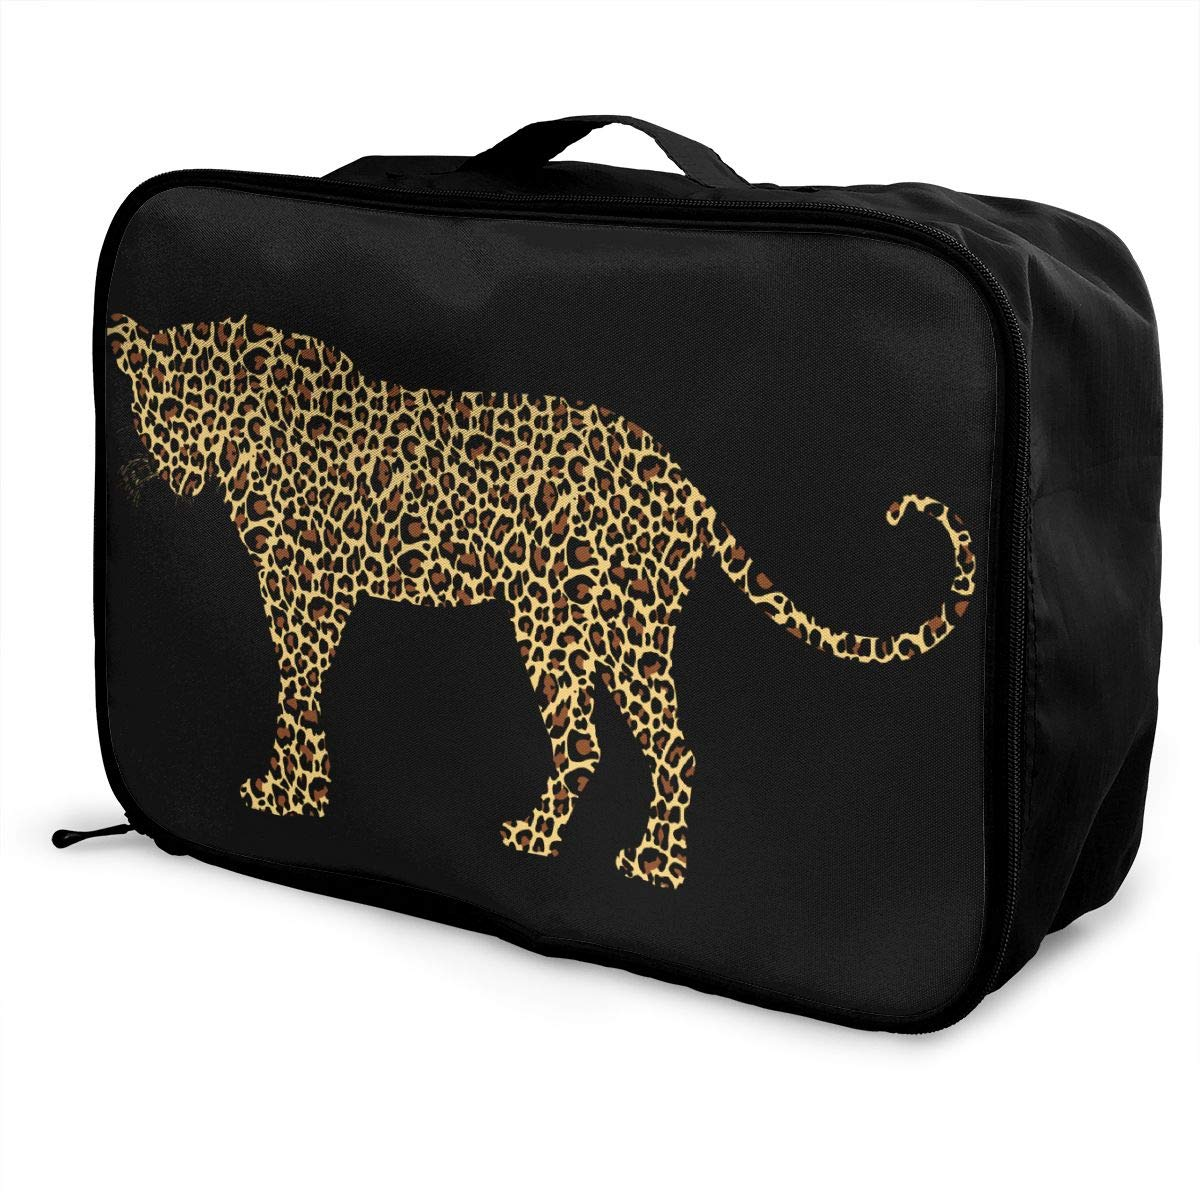 Leopard Big Cat Wild Animal Silhouette Texture Travel Lightweight Waterproof Foldable Storage Carry Luggage Large Capacity Portable Luggage Bag Duffel Bag